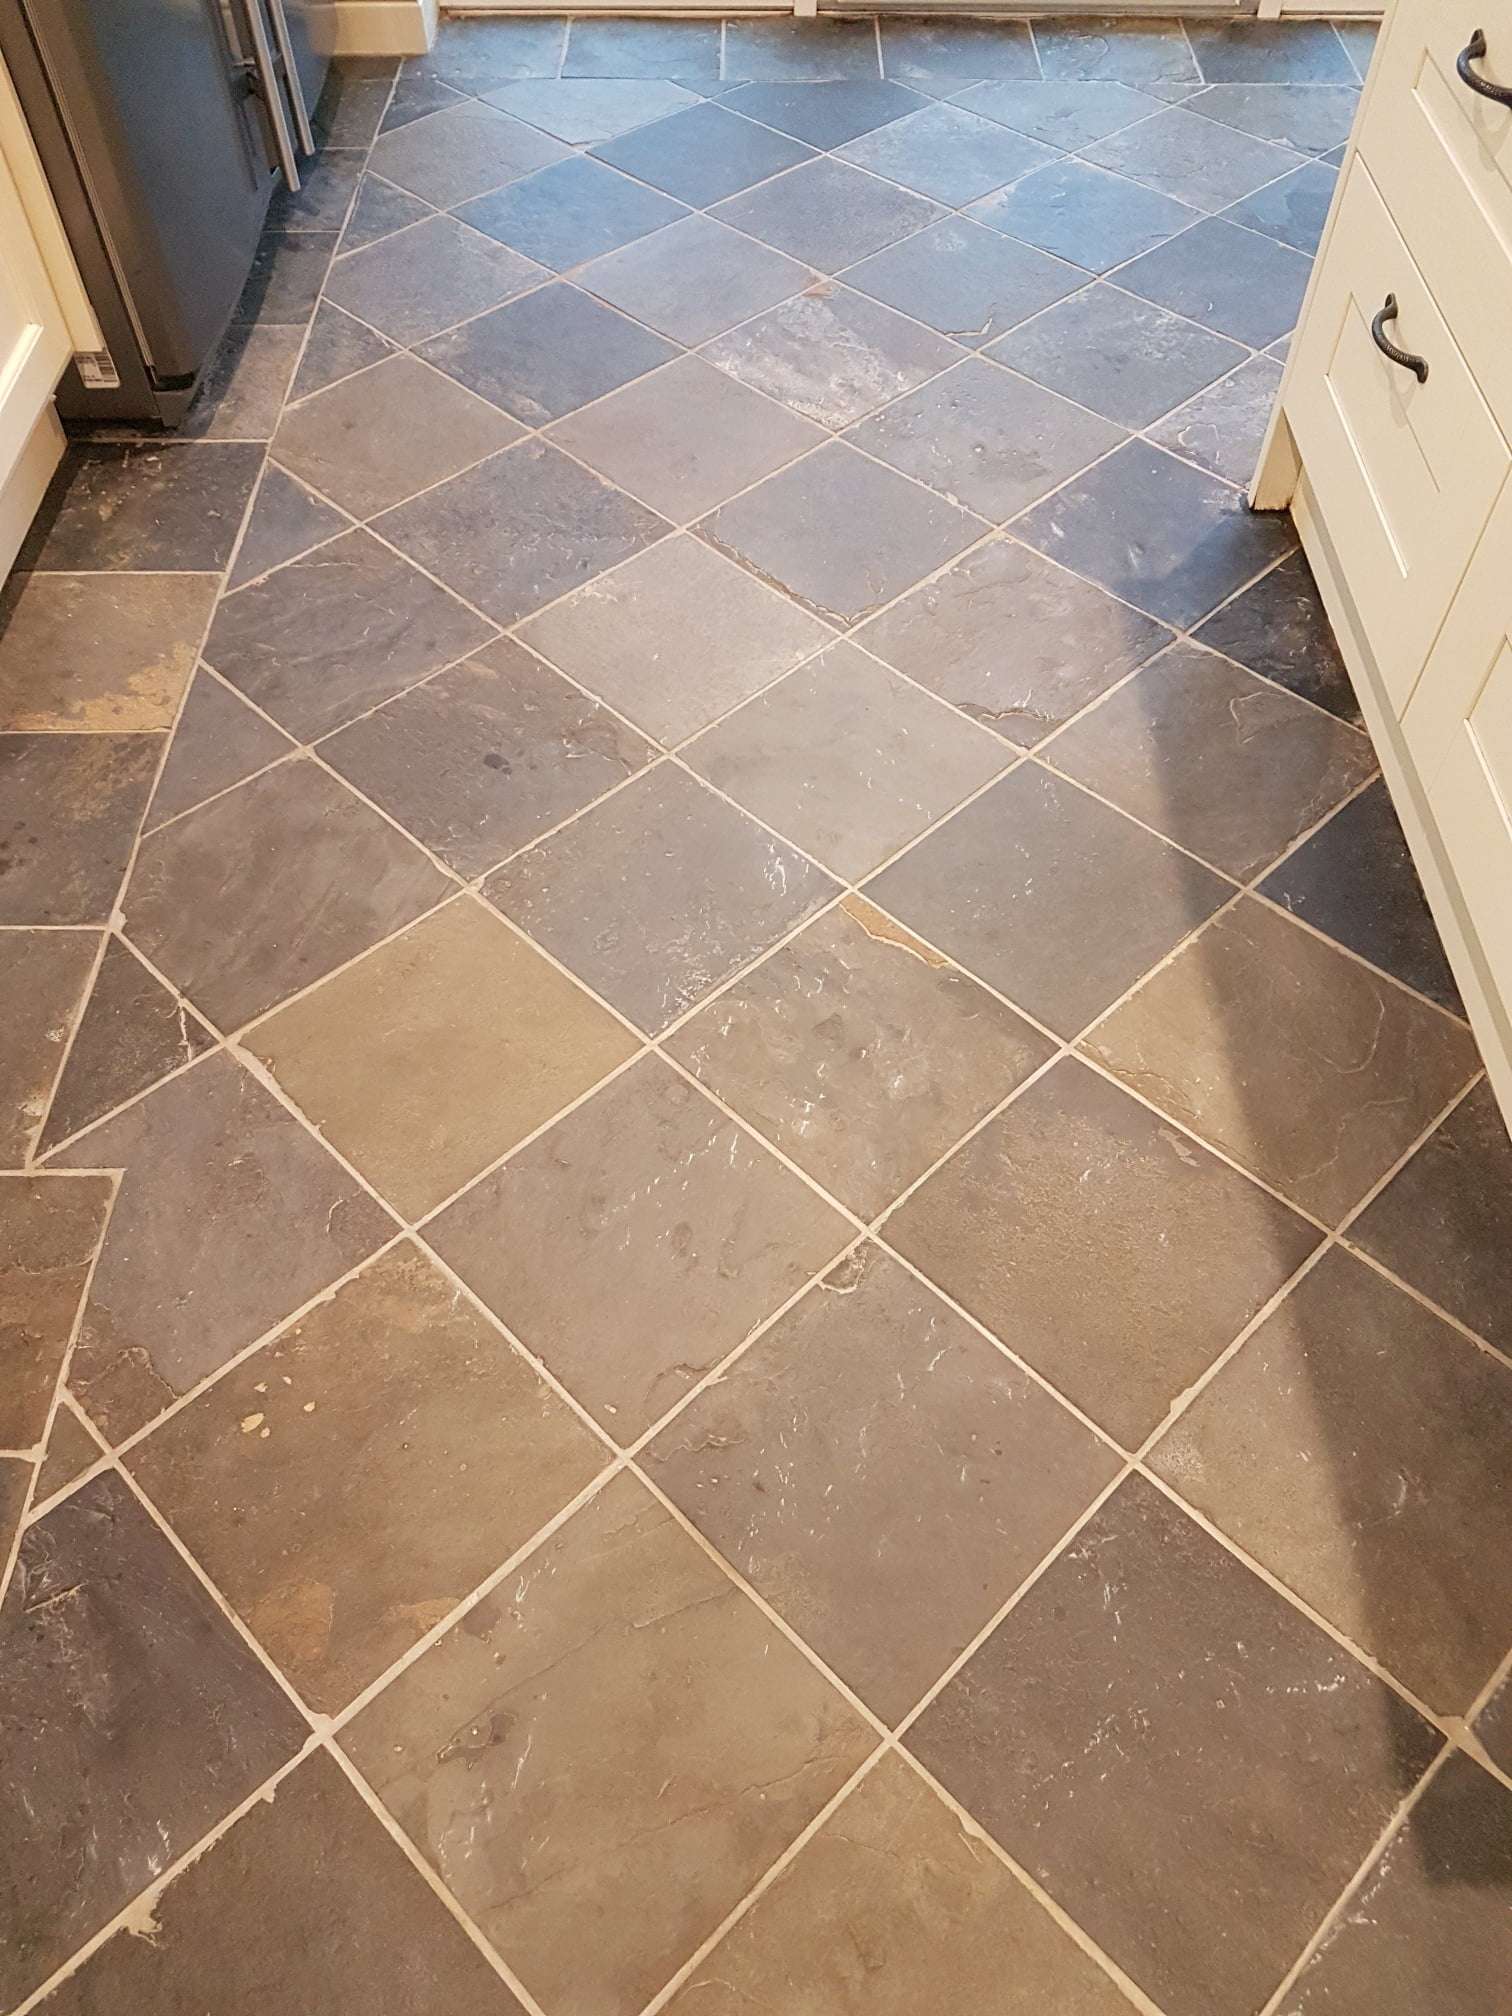 Slate Floor After Cleaning Harrogate Kitchen